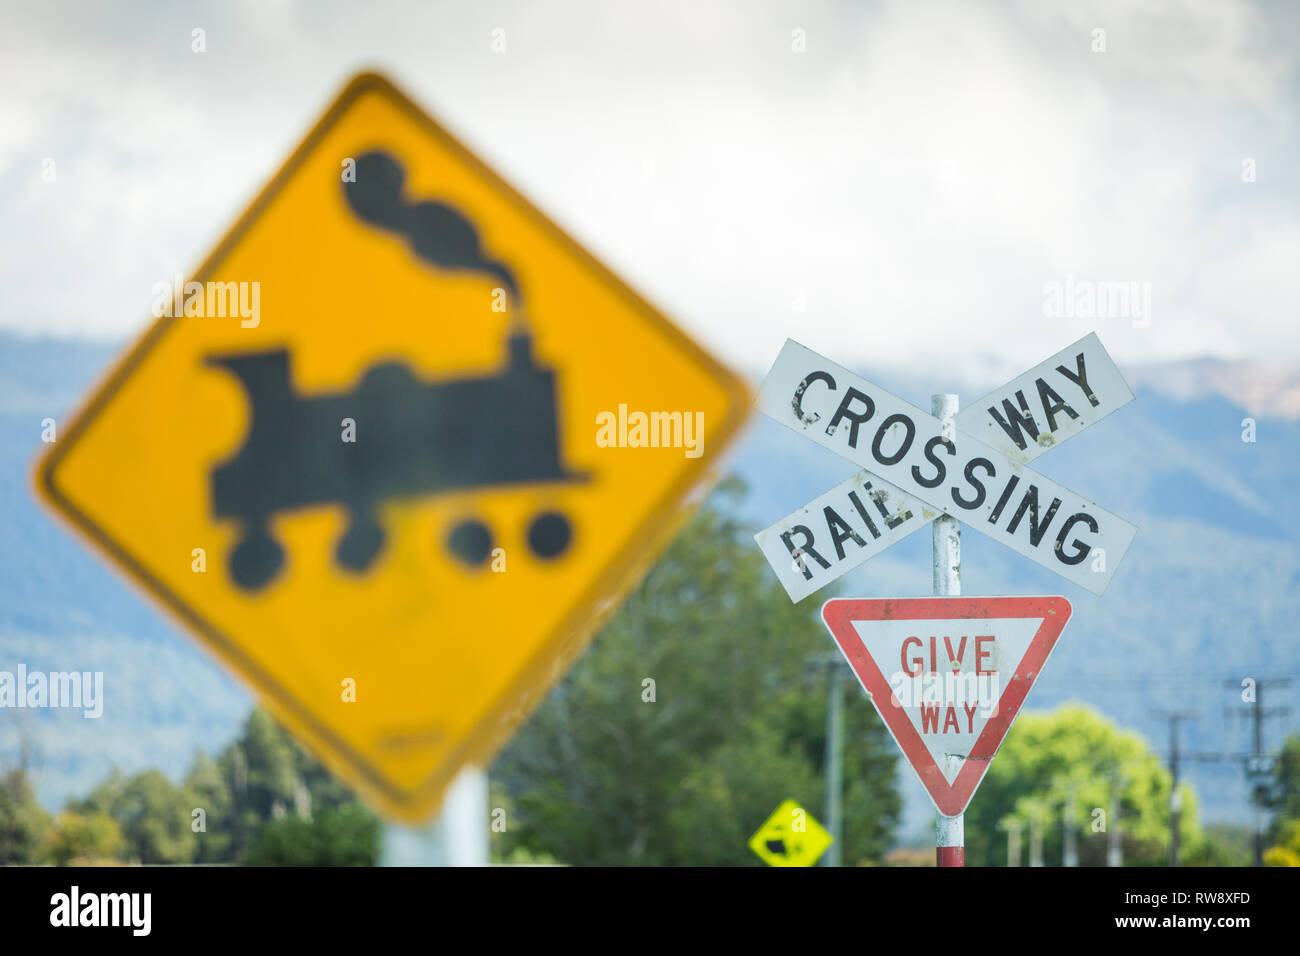 Railway Crossing Signs Stock Photos & Railway Crossing Signs